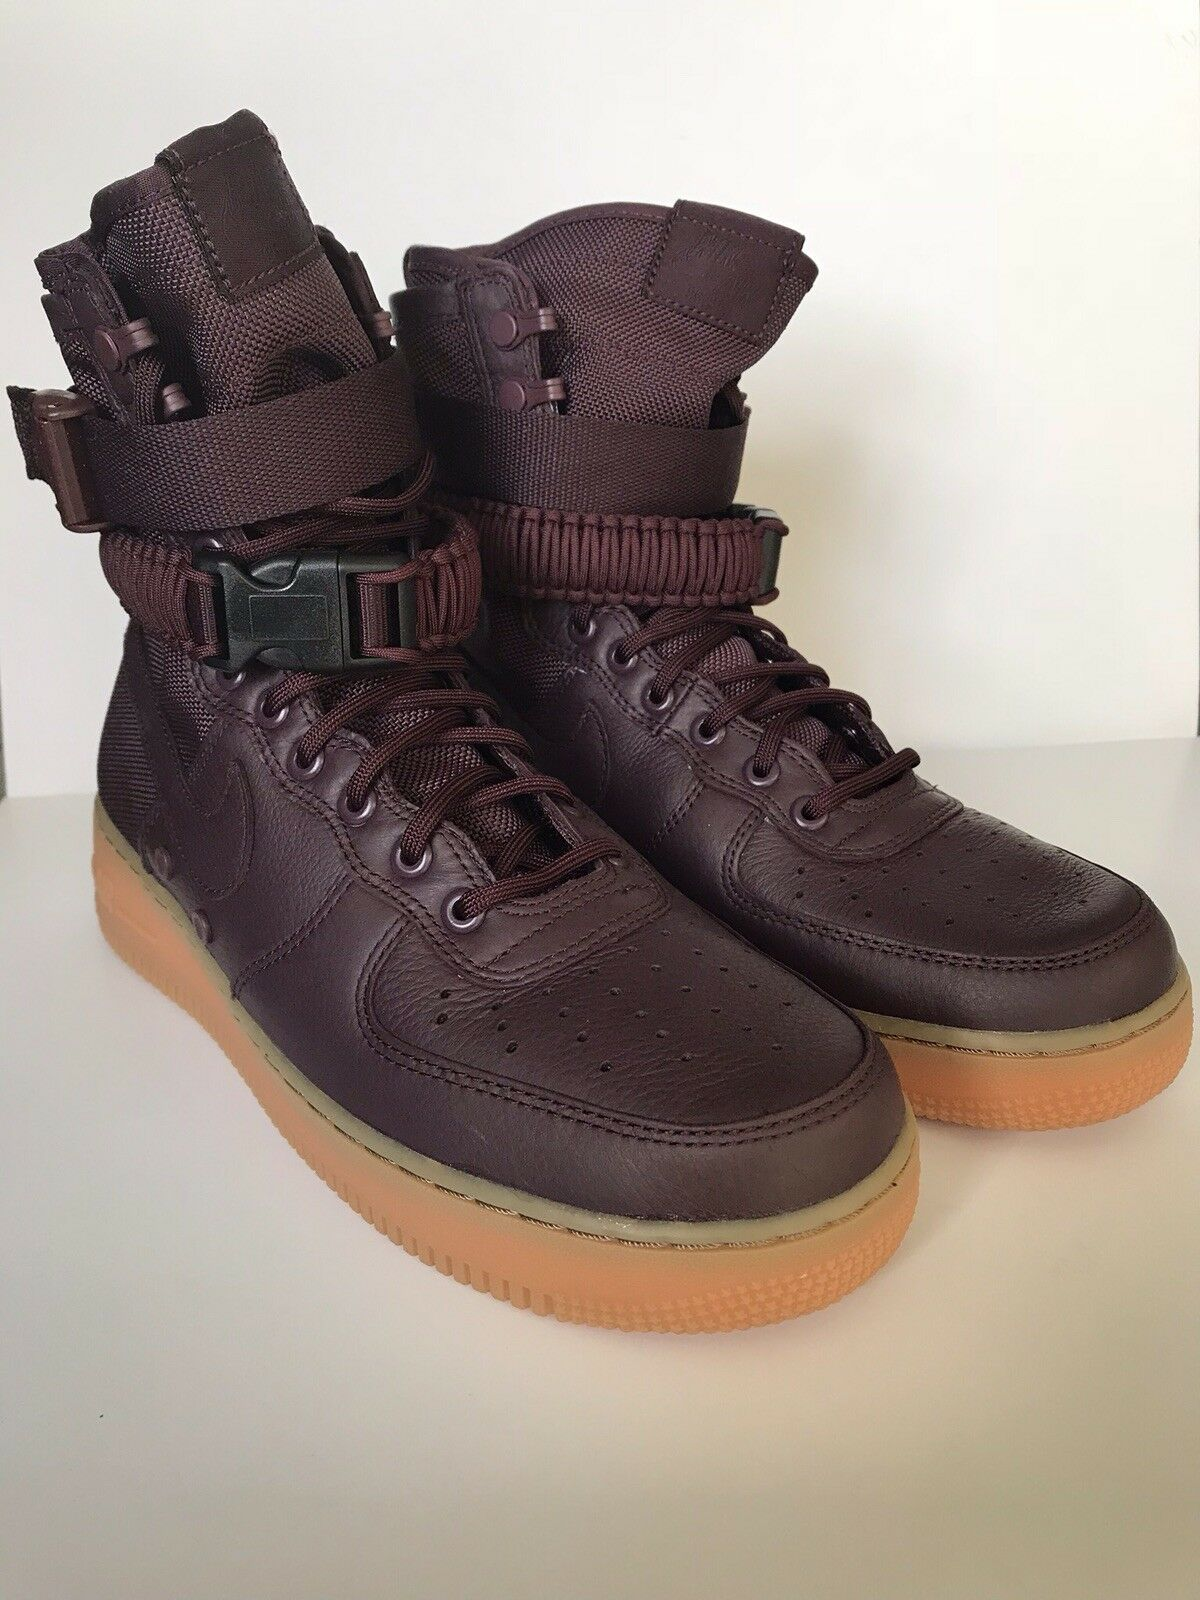 Nike SF AF1 Special Field Air Force Boots Size 9 Deep Burgundy 864024-600